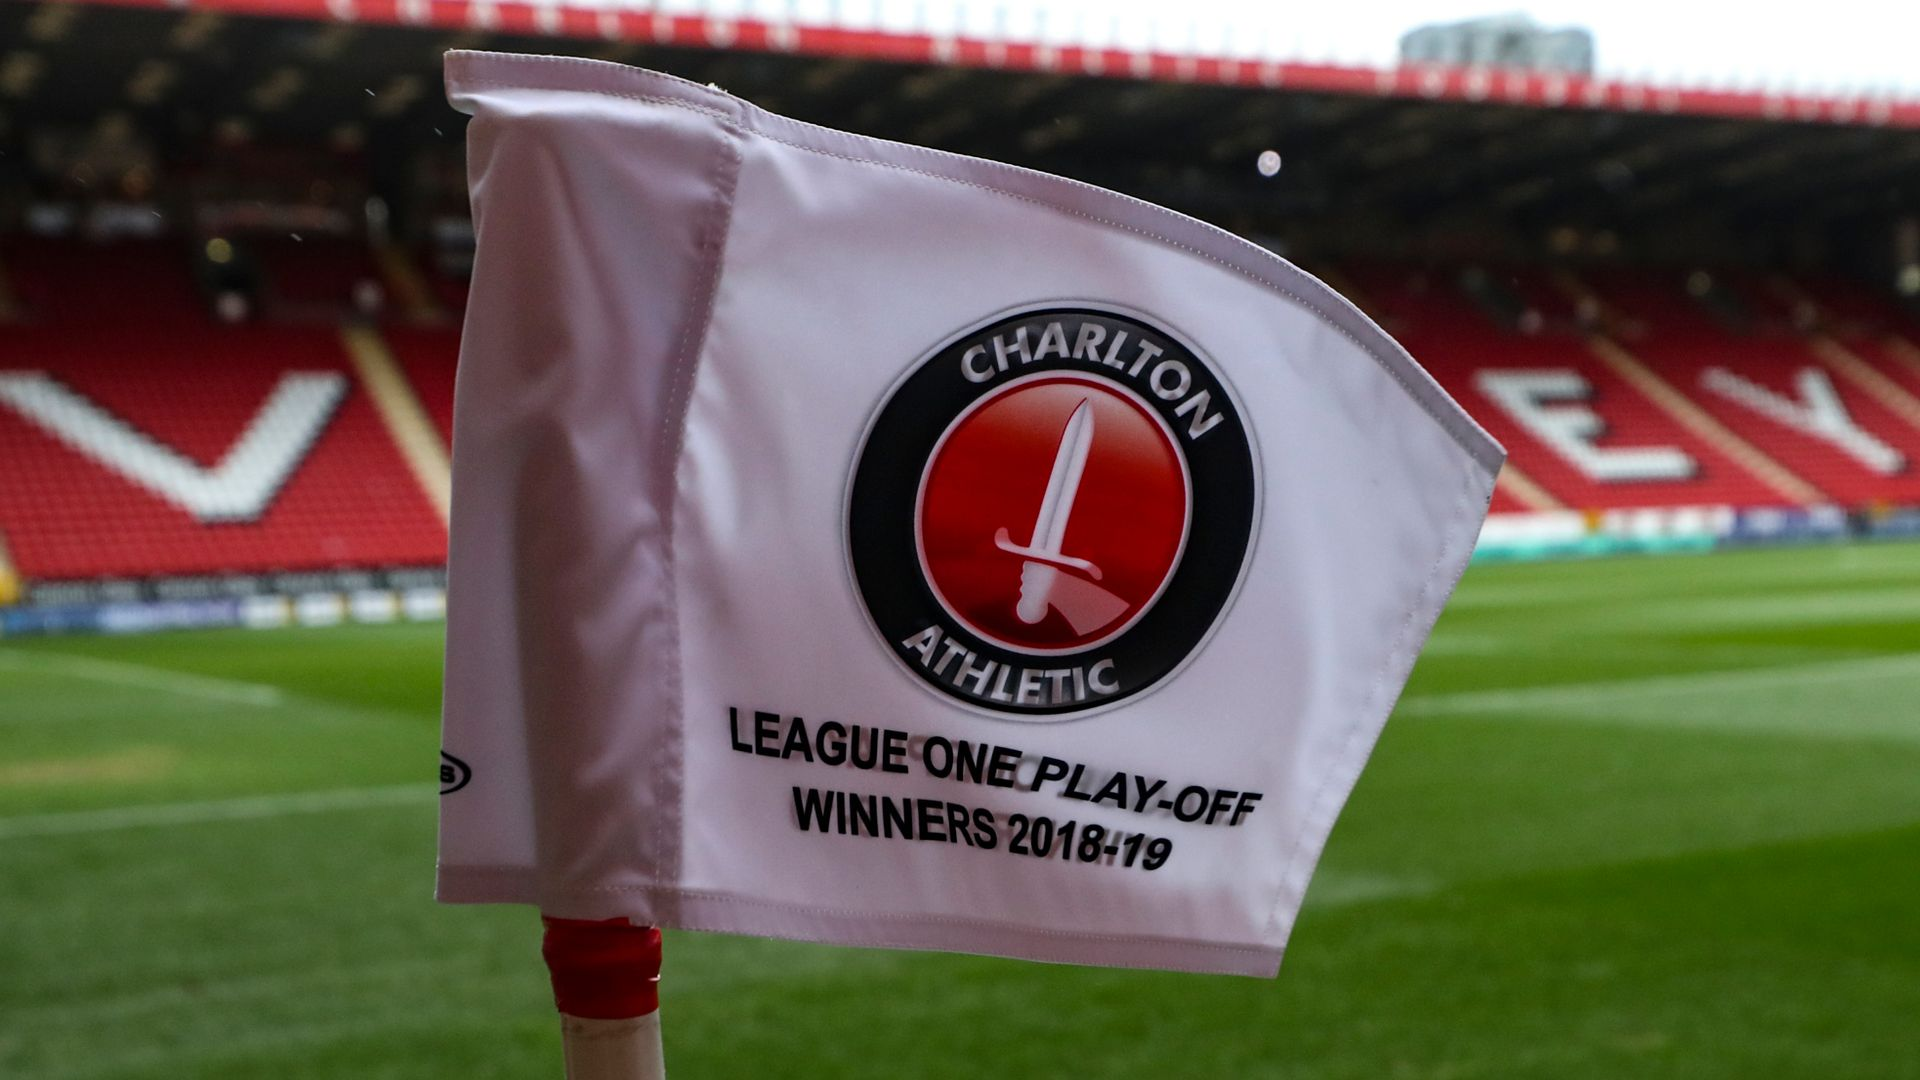 EFL want meeting with current and potential Charlton owners